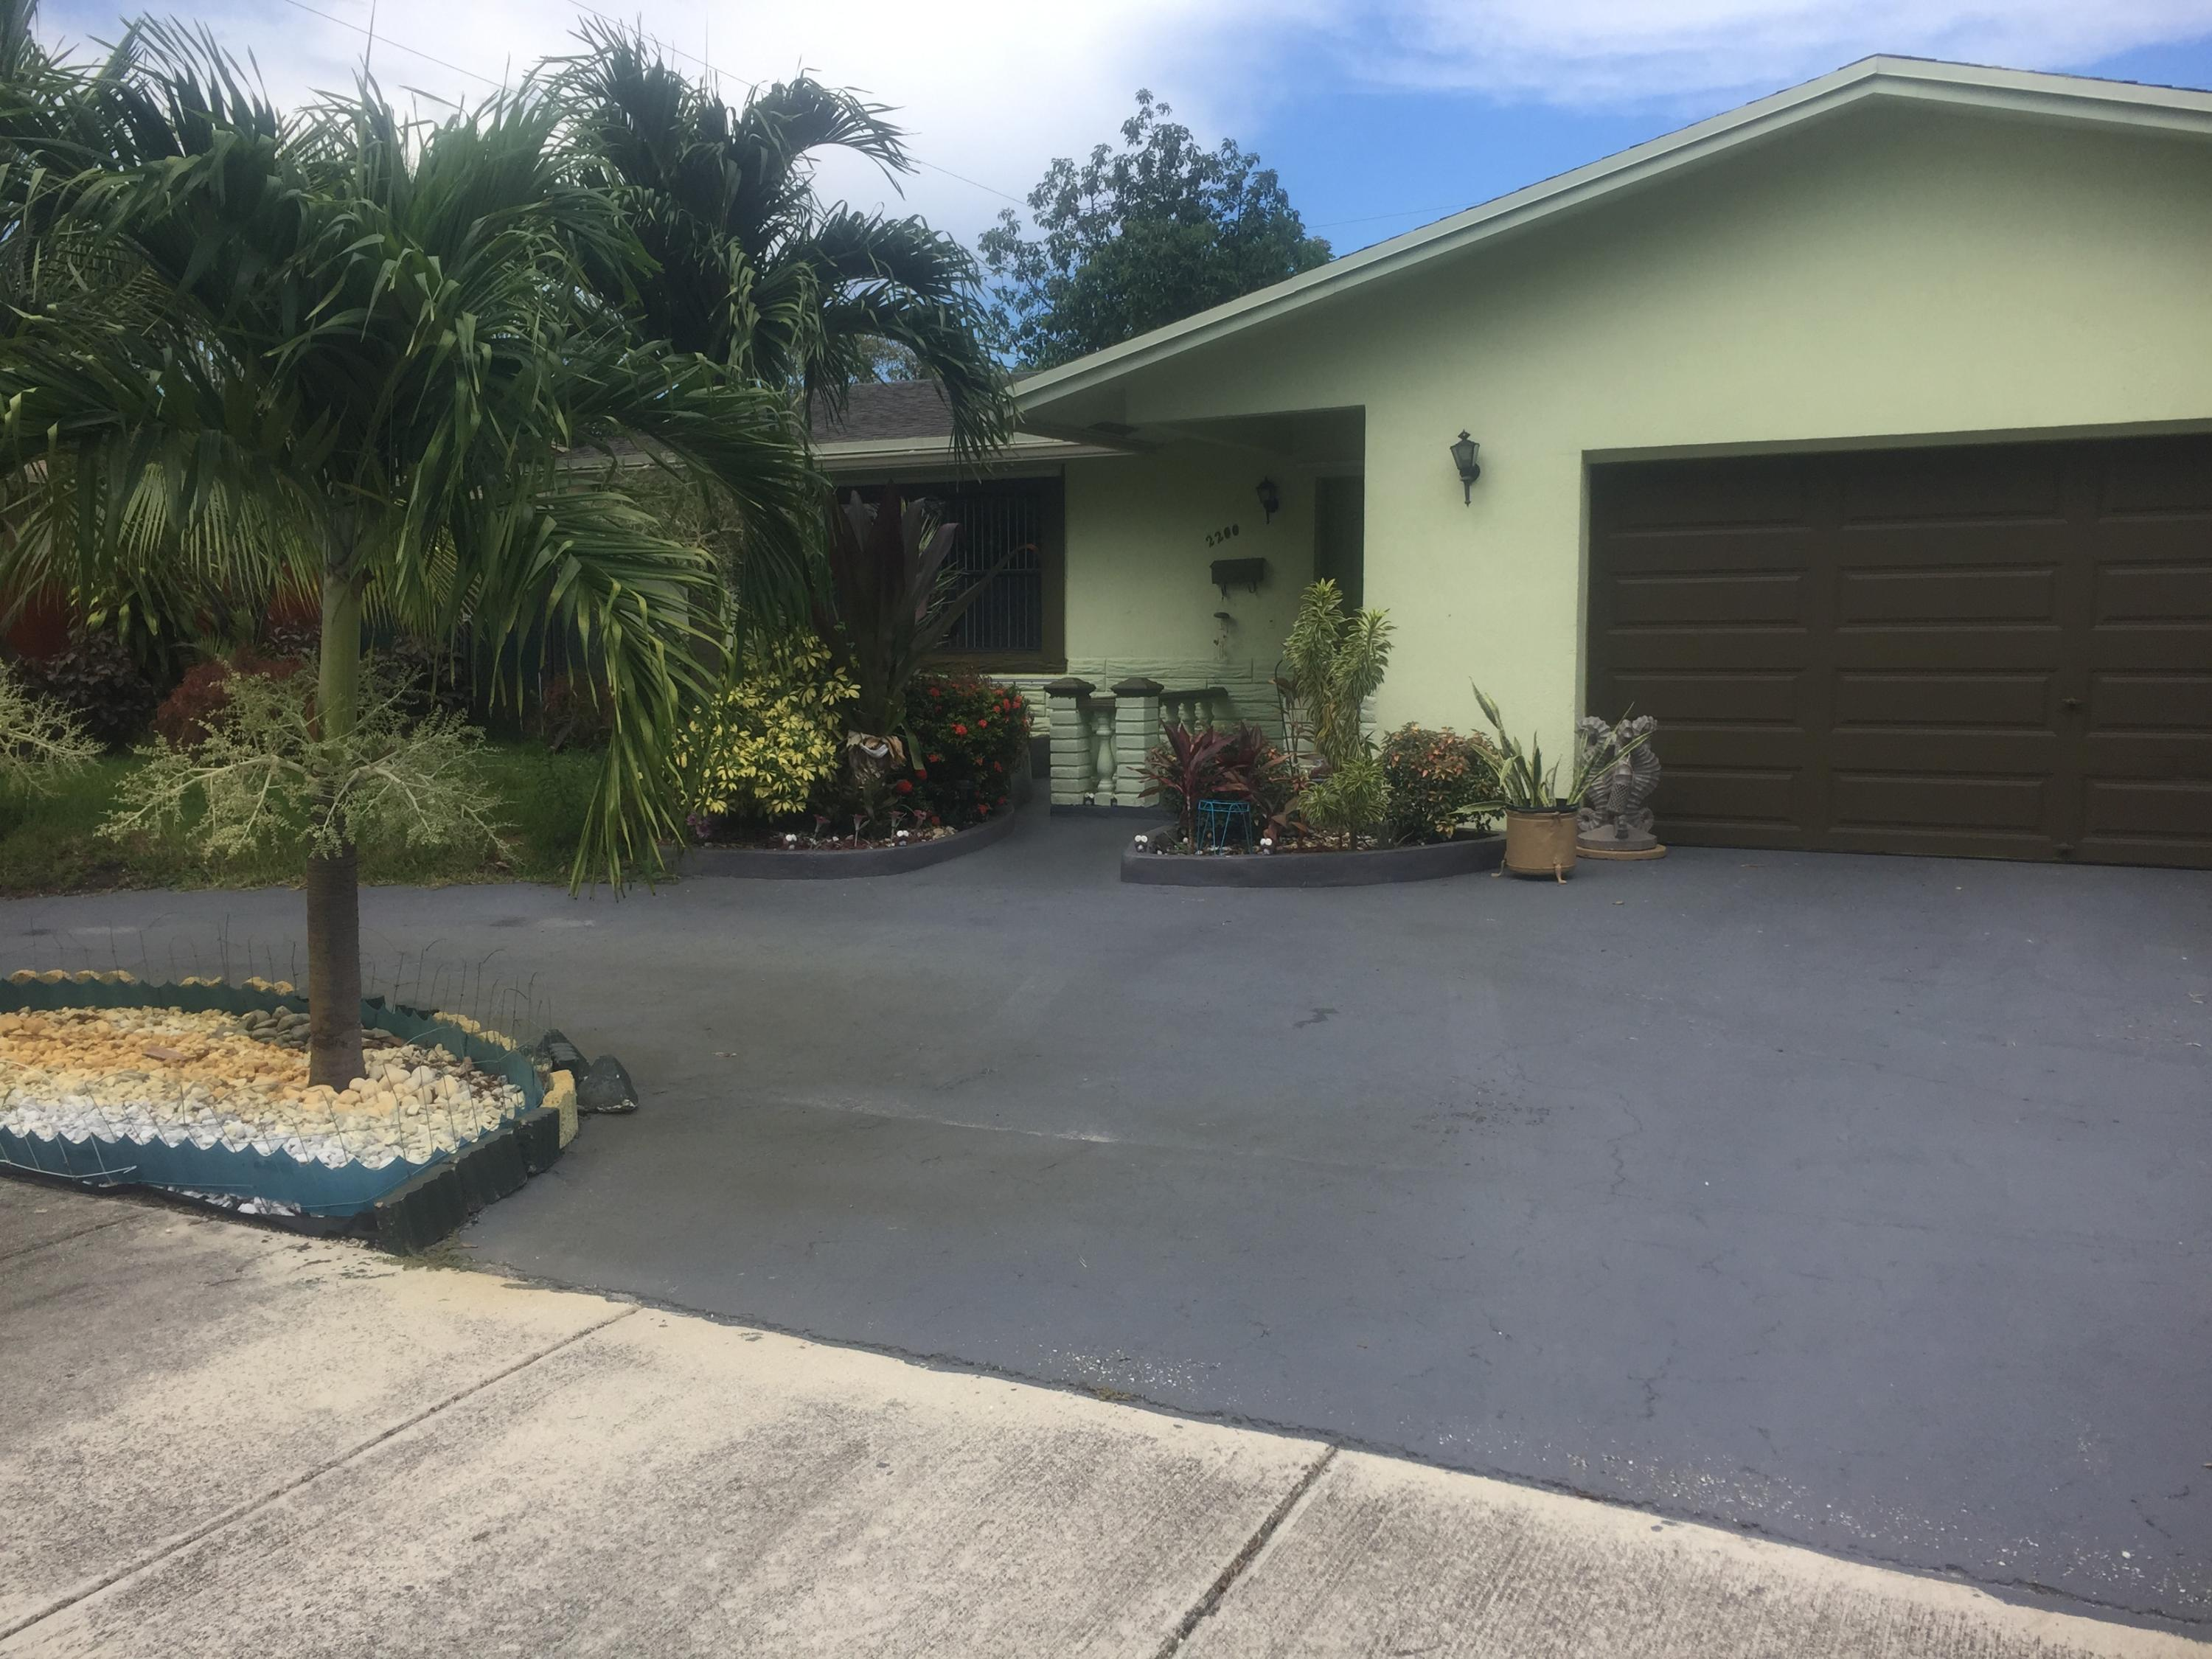 2200 Nw 30th Nw Terrace, Fort Lauderdale, FL 33311